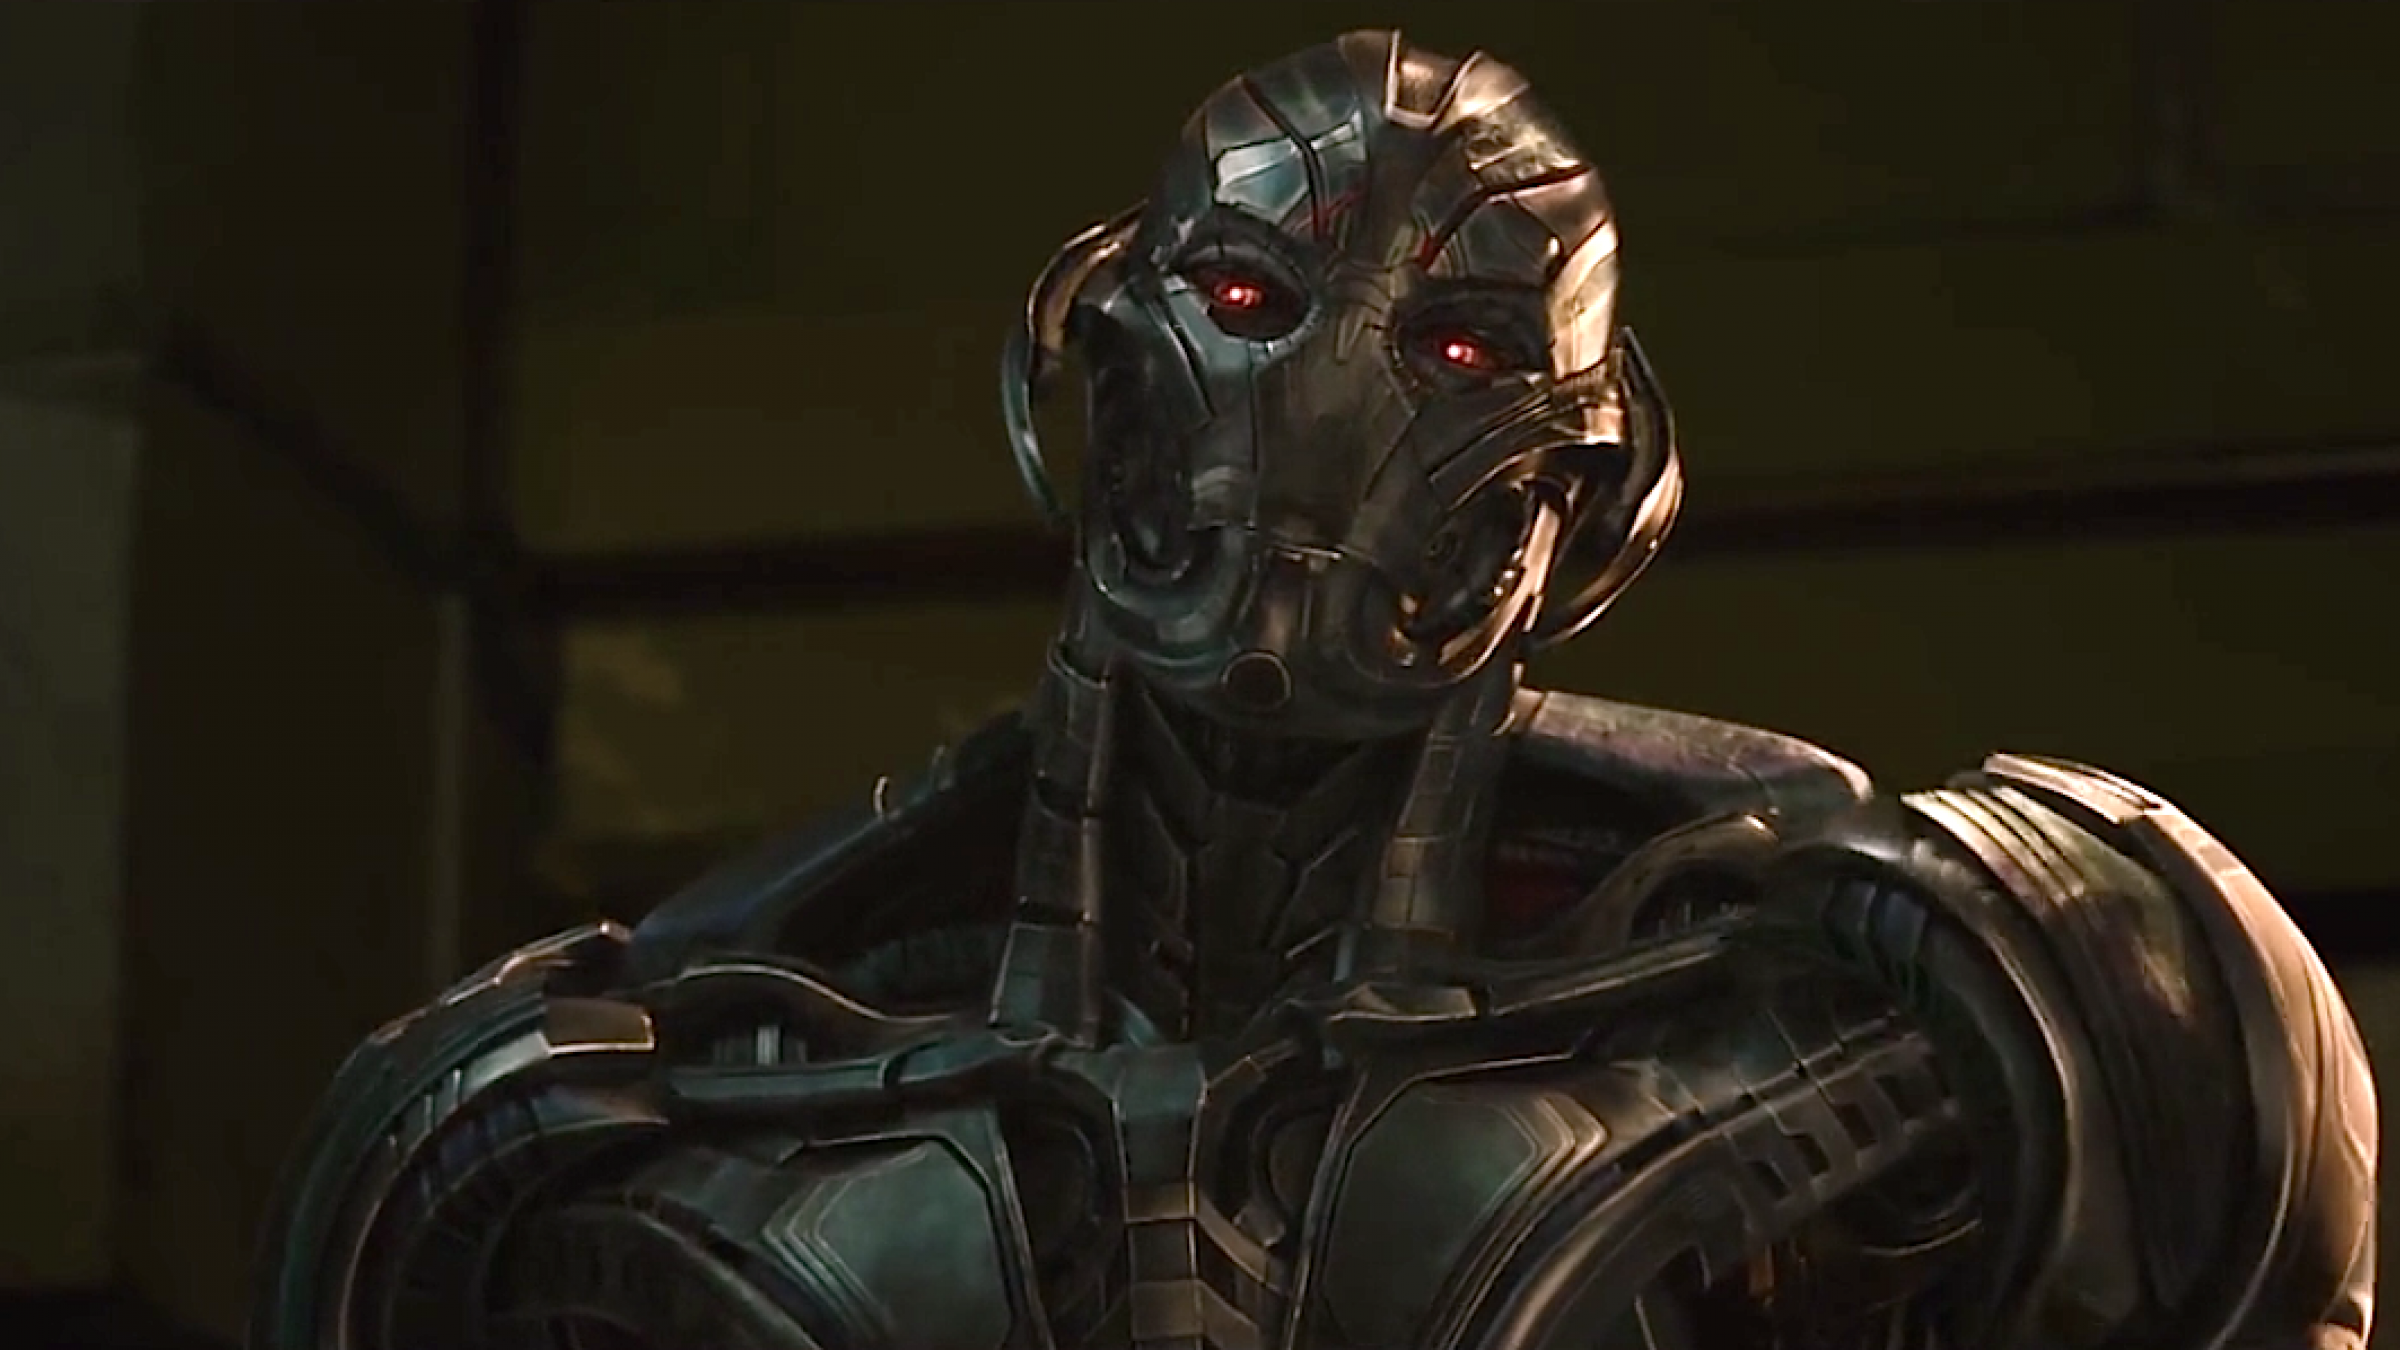 Image result for Avengers age of ultron ultron